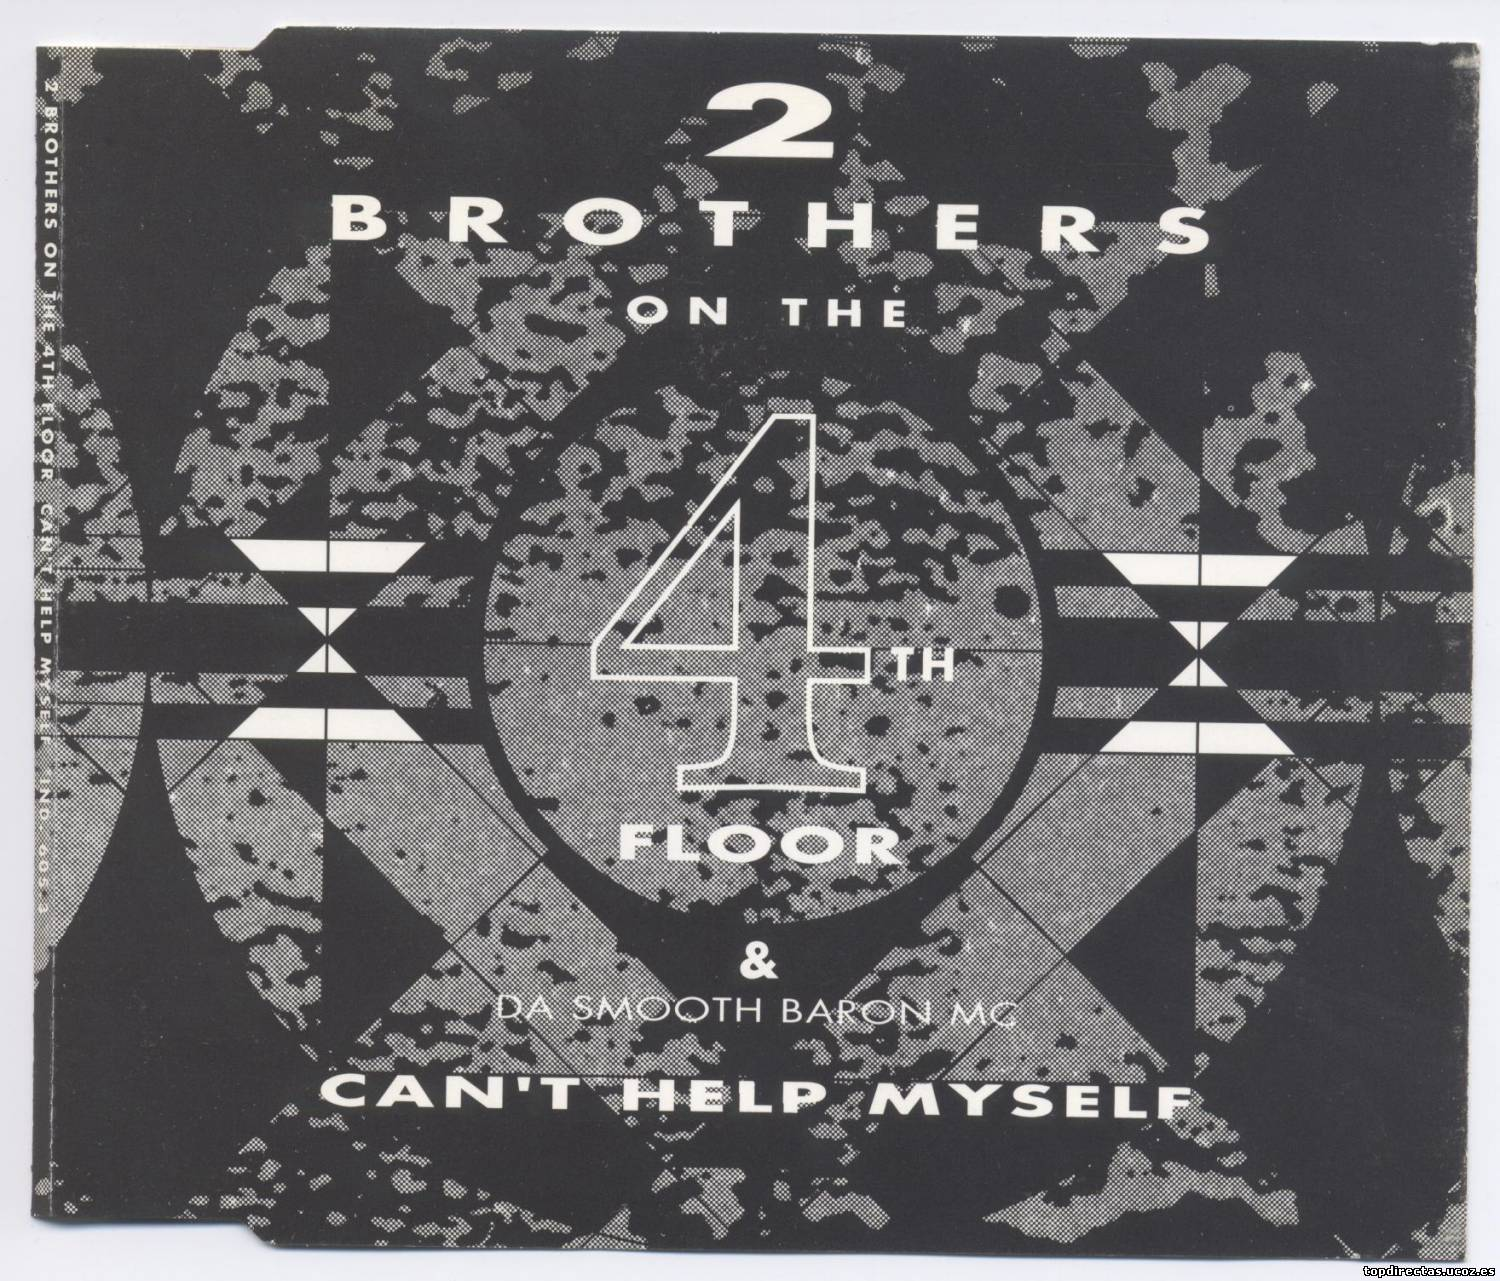 2 Brothers On The 4th Floor - Can't Help Myself (Maxi-CD) 1990